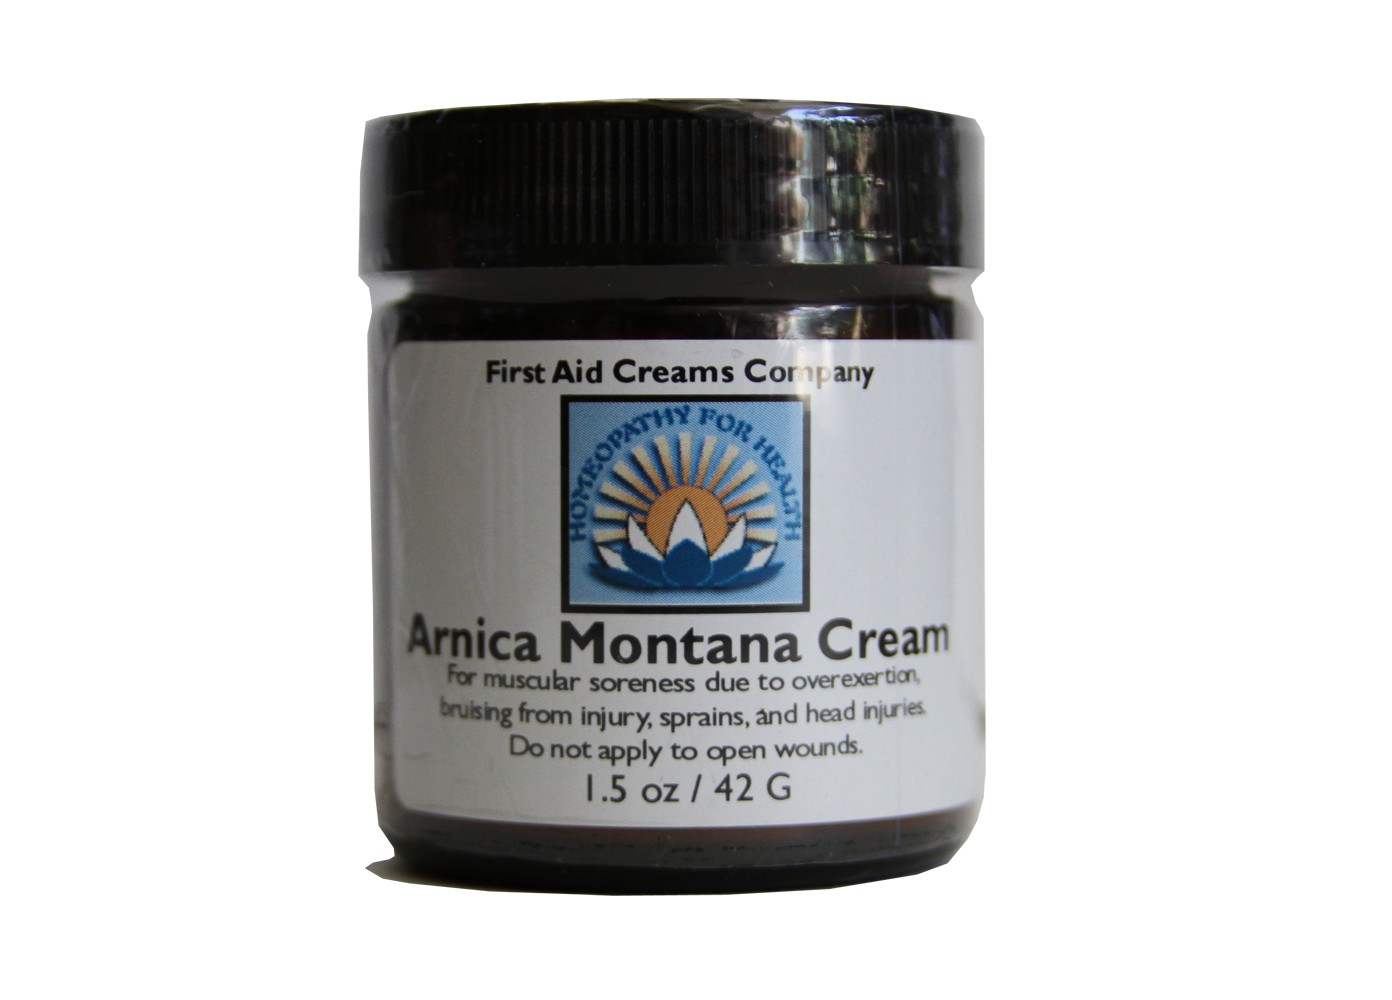 Arnica Montana Cream - First Aid Creams